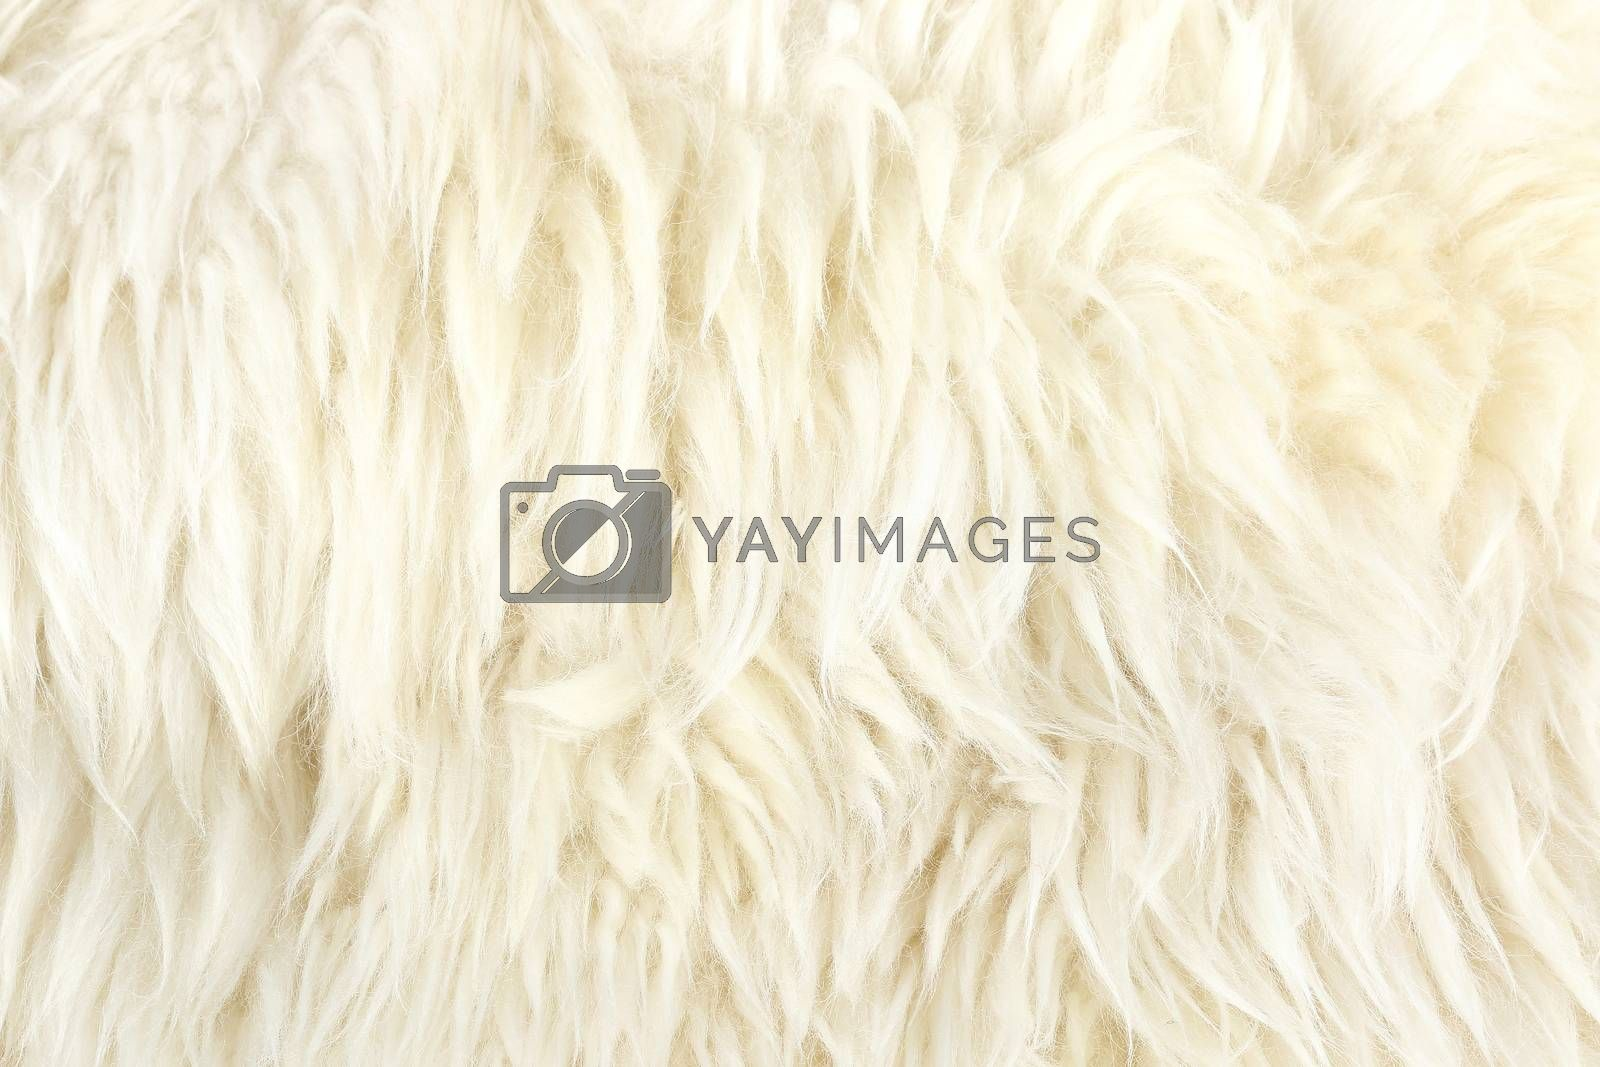 Royalty free image of fur by simpleBE